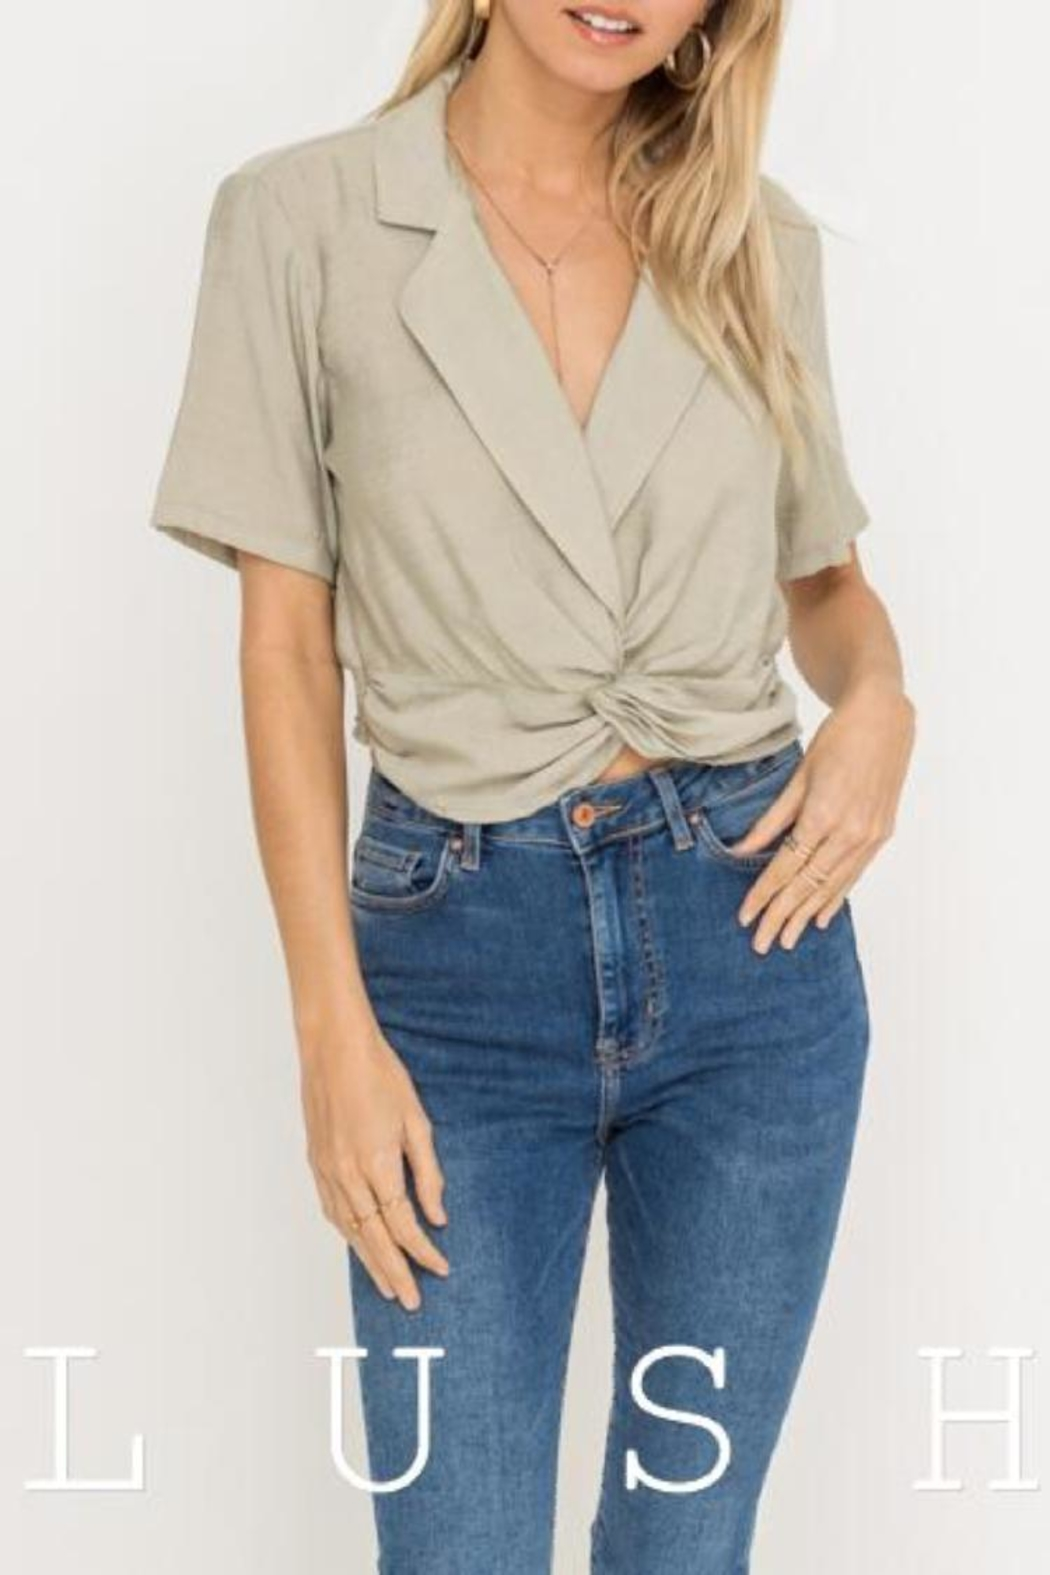 Lush Collared Twist-Front Top - Main Image